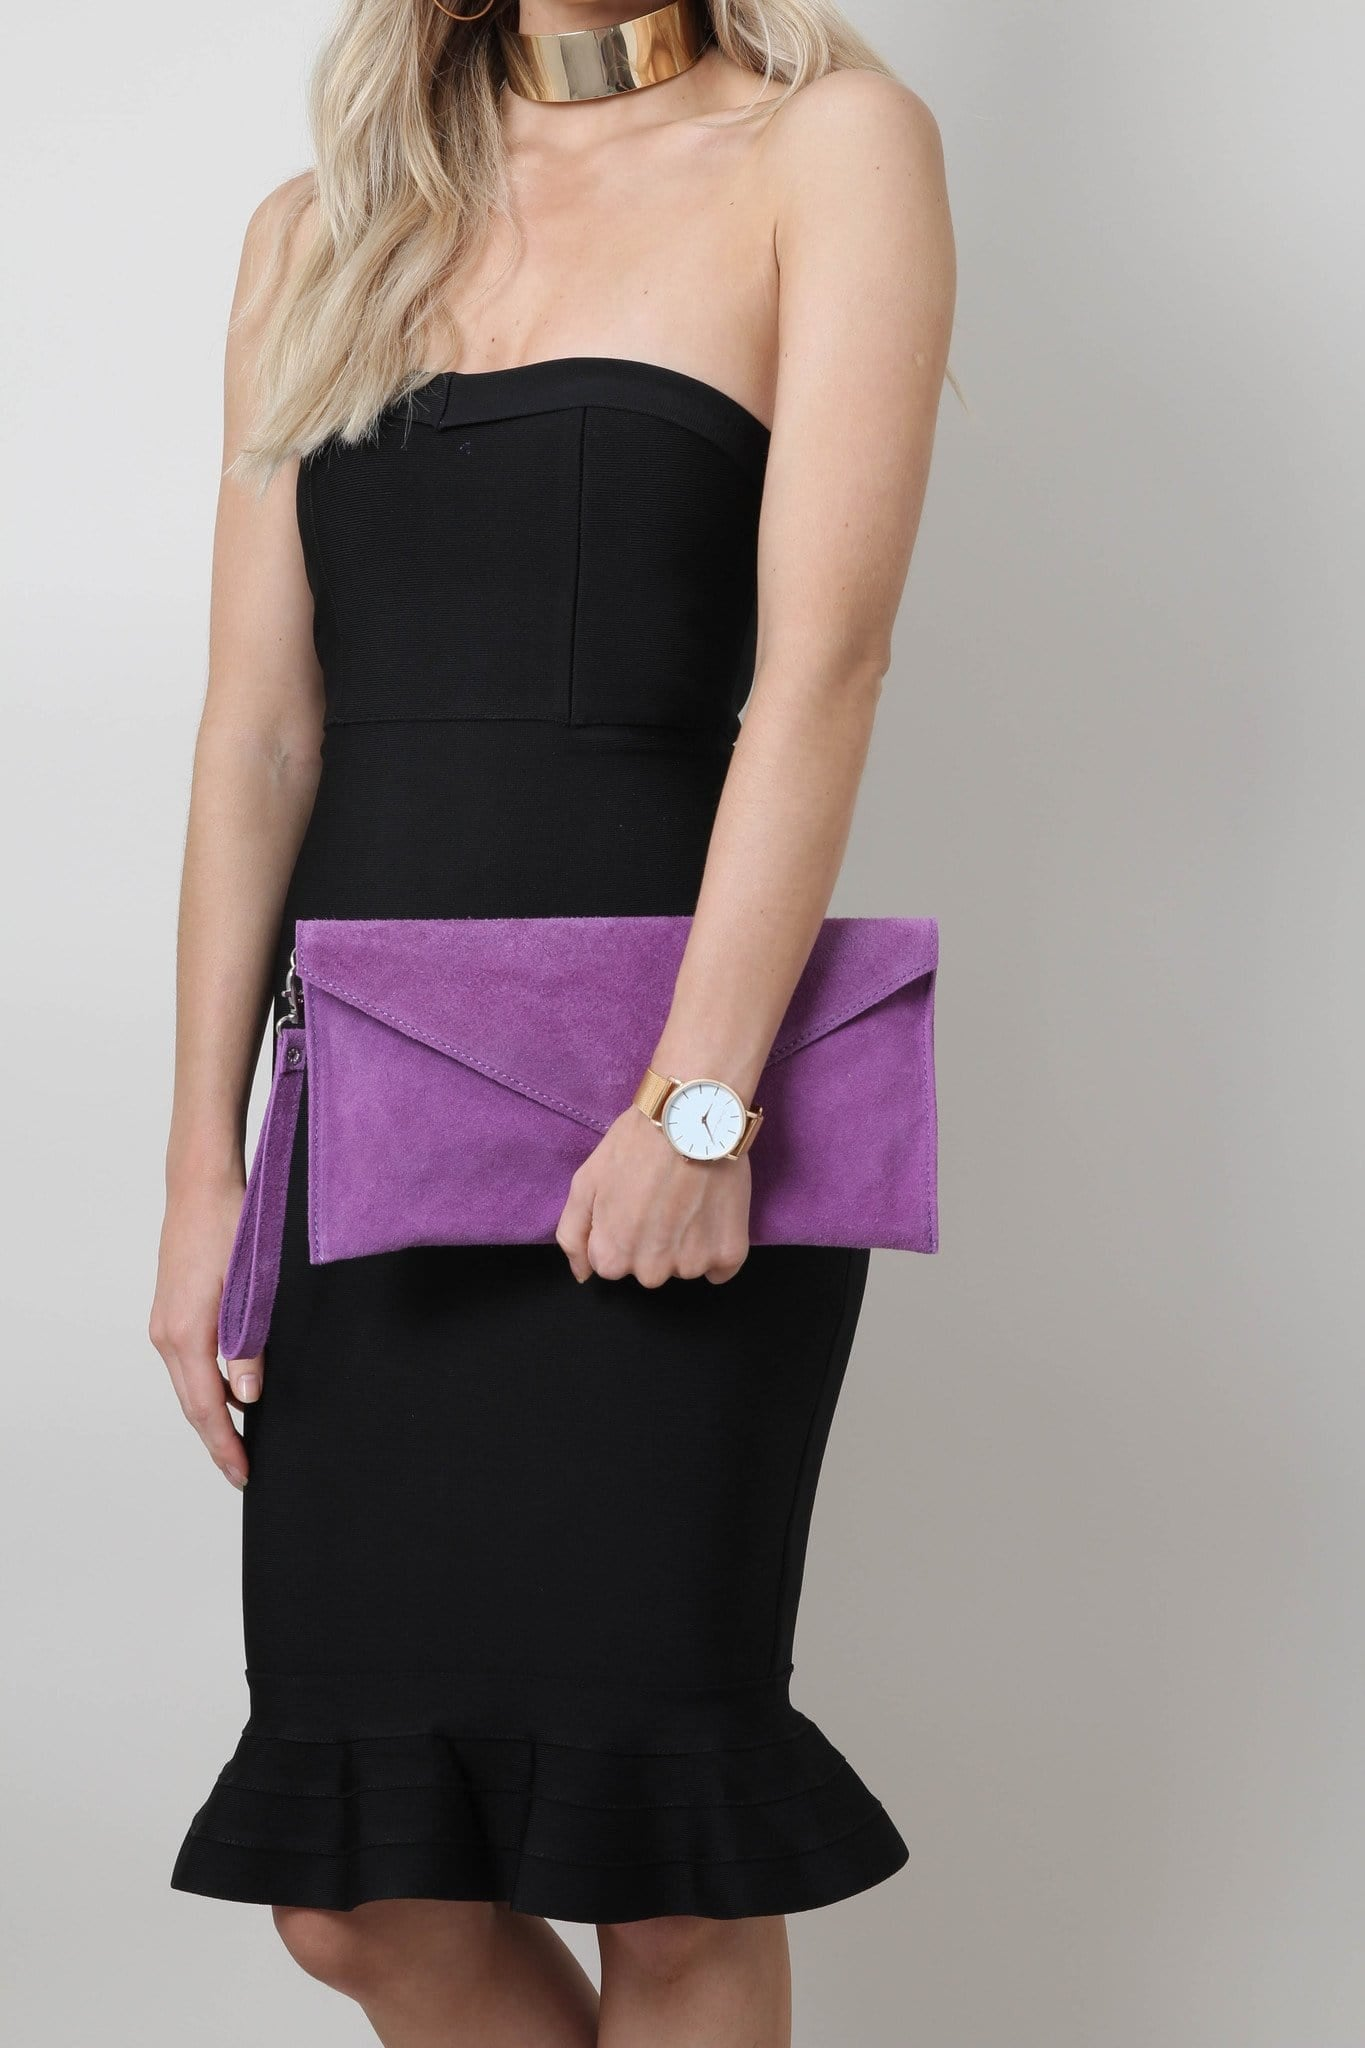 Suede Envelope Clutch Bag - Light Purple, Bags - Pretty Lavish